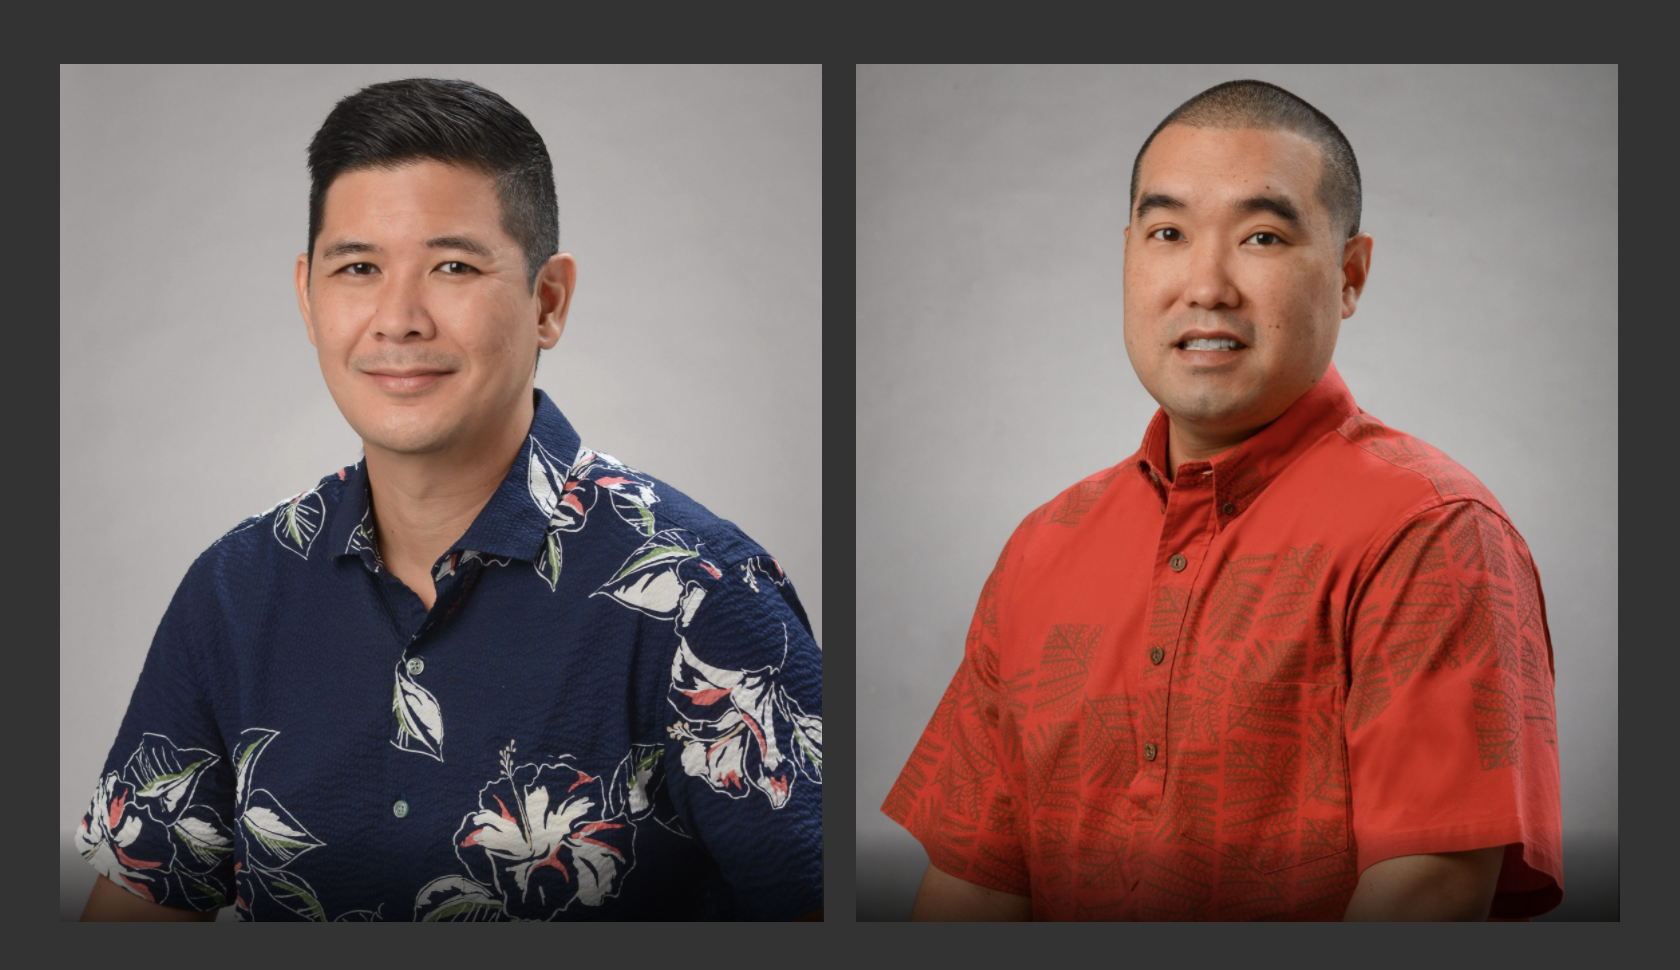 Hawaiʻi State FCU Adds Two Managers to Regional Retail Team